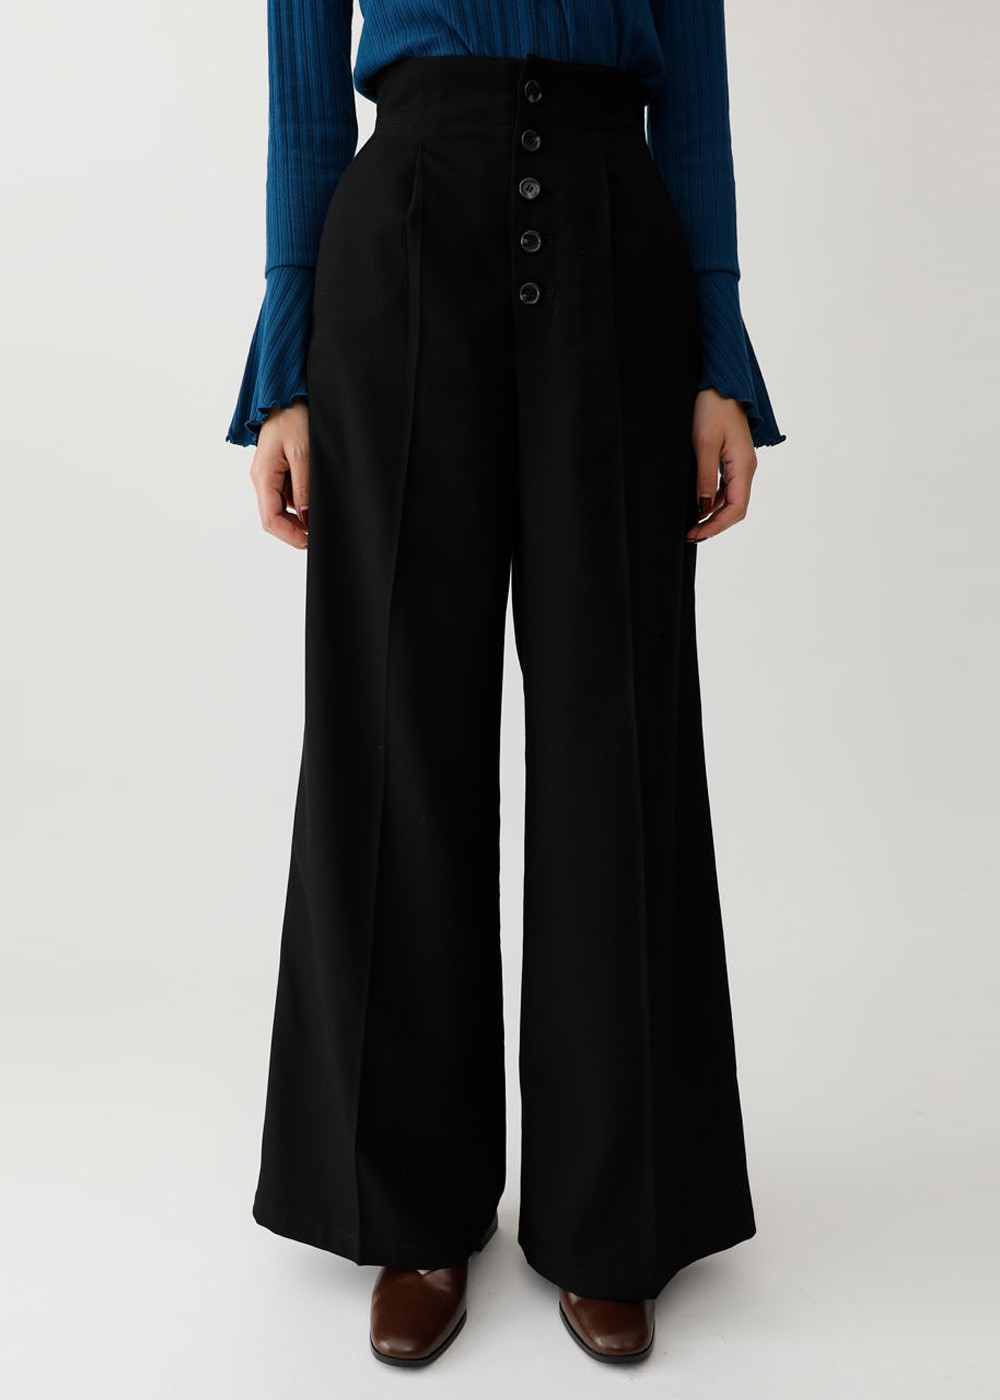 【最大60%OFF】HI WAIST CHECK WIDE PANTS|BLK|ワイド|MOUSSY